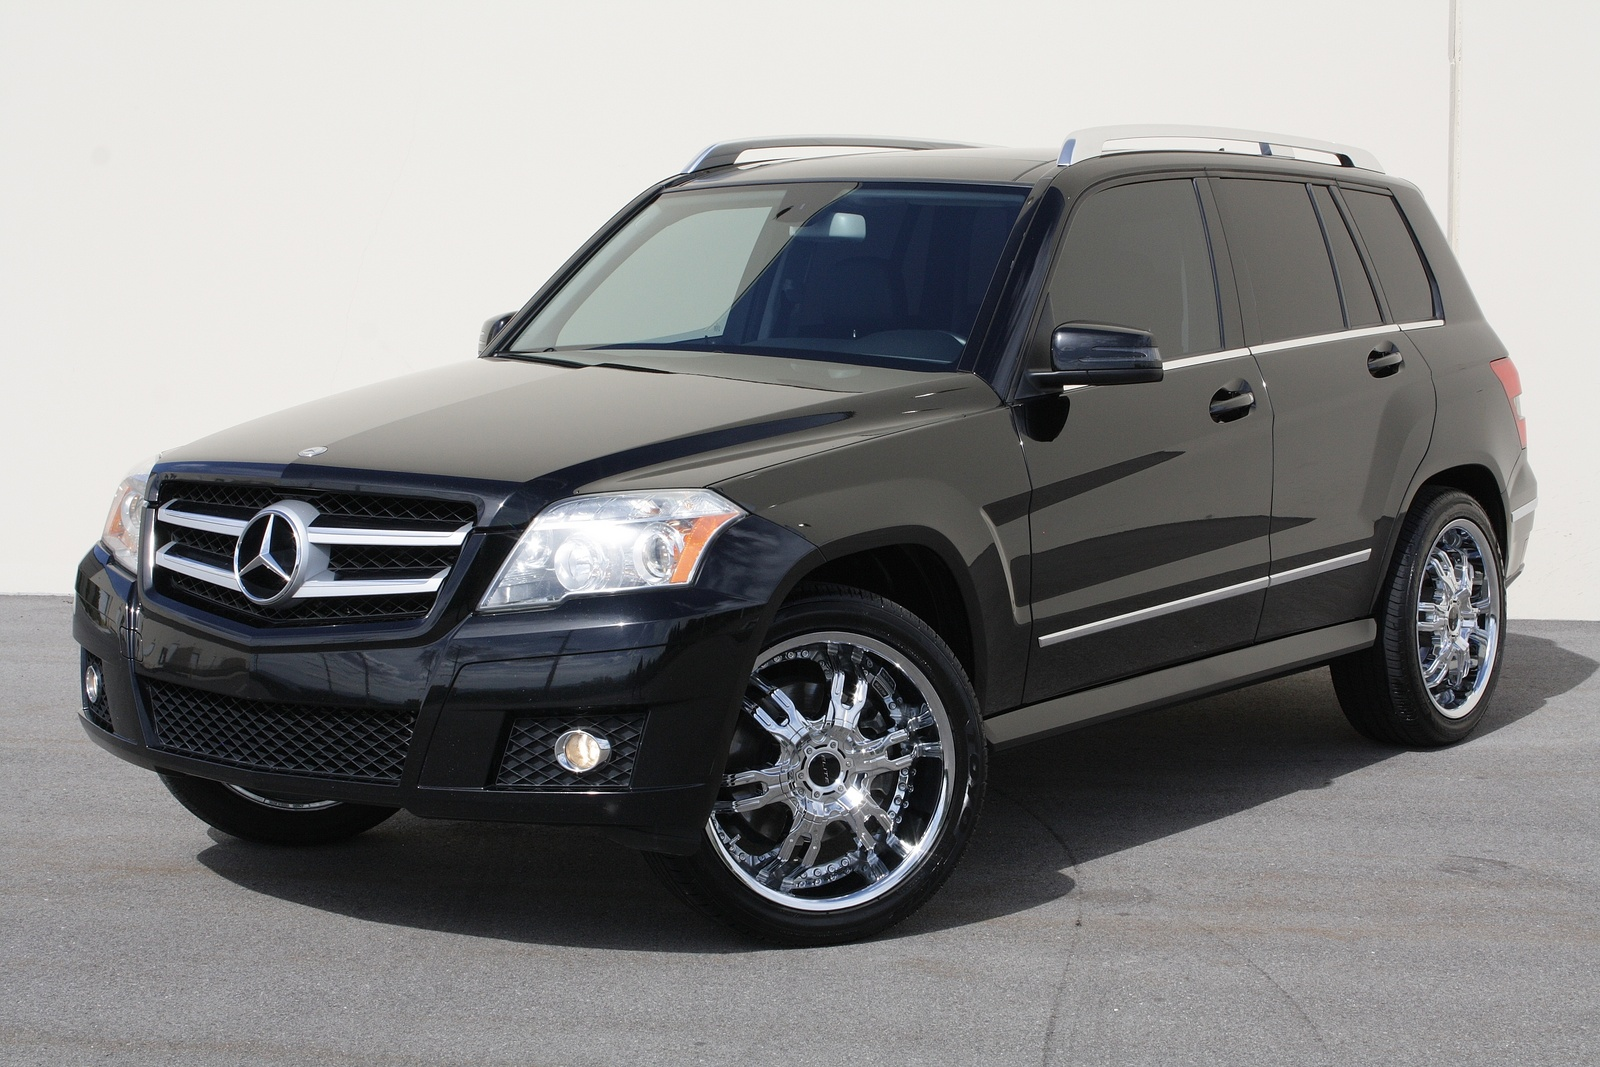 mercedes benz glk glk 2010 technical specifications interior and exterior photo. Black Bedroom Furniture Sets. Home Design Ideas